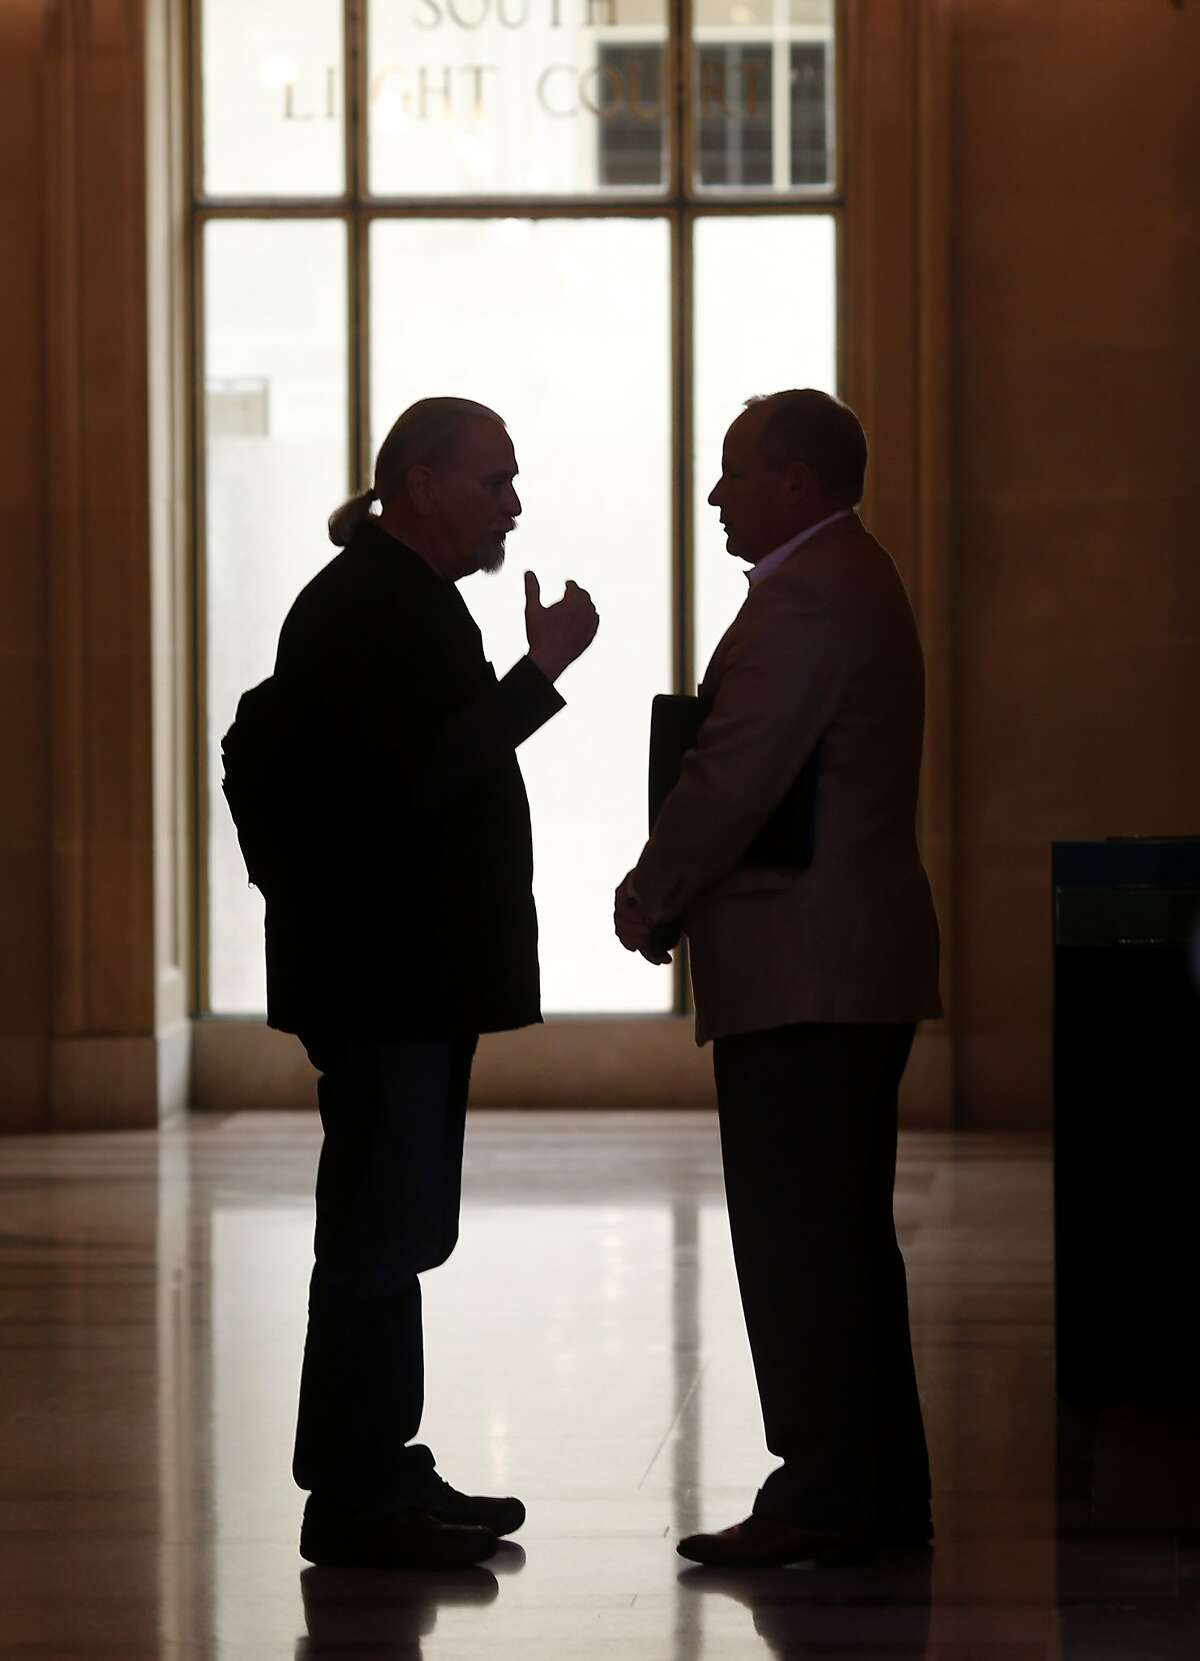 Calvin Welch, a housing activist, (left) and Dale Carlson, a public relations executive, talked while waiting for their friend in City Hall before visiting some Supervisors. A group of neighborhood activists are organizing a ballot initiative to rein in short-term rentals like Airbnb in San Francisco, Calif.